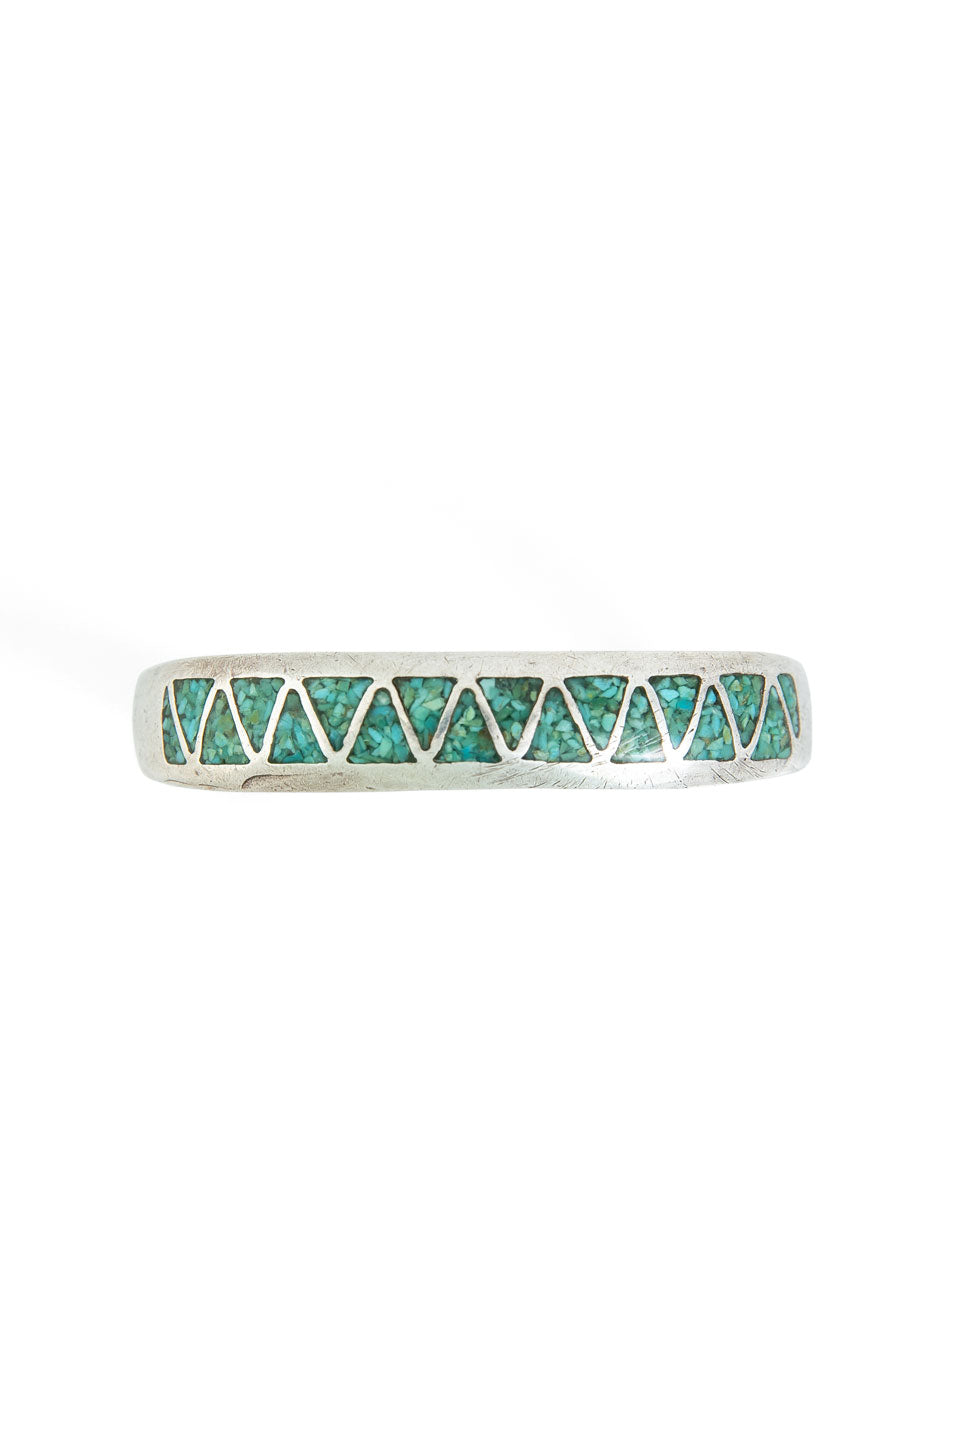 Cuff, Chip Inlay, Turquoise, 1970's, Vintage, 2428